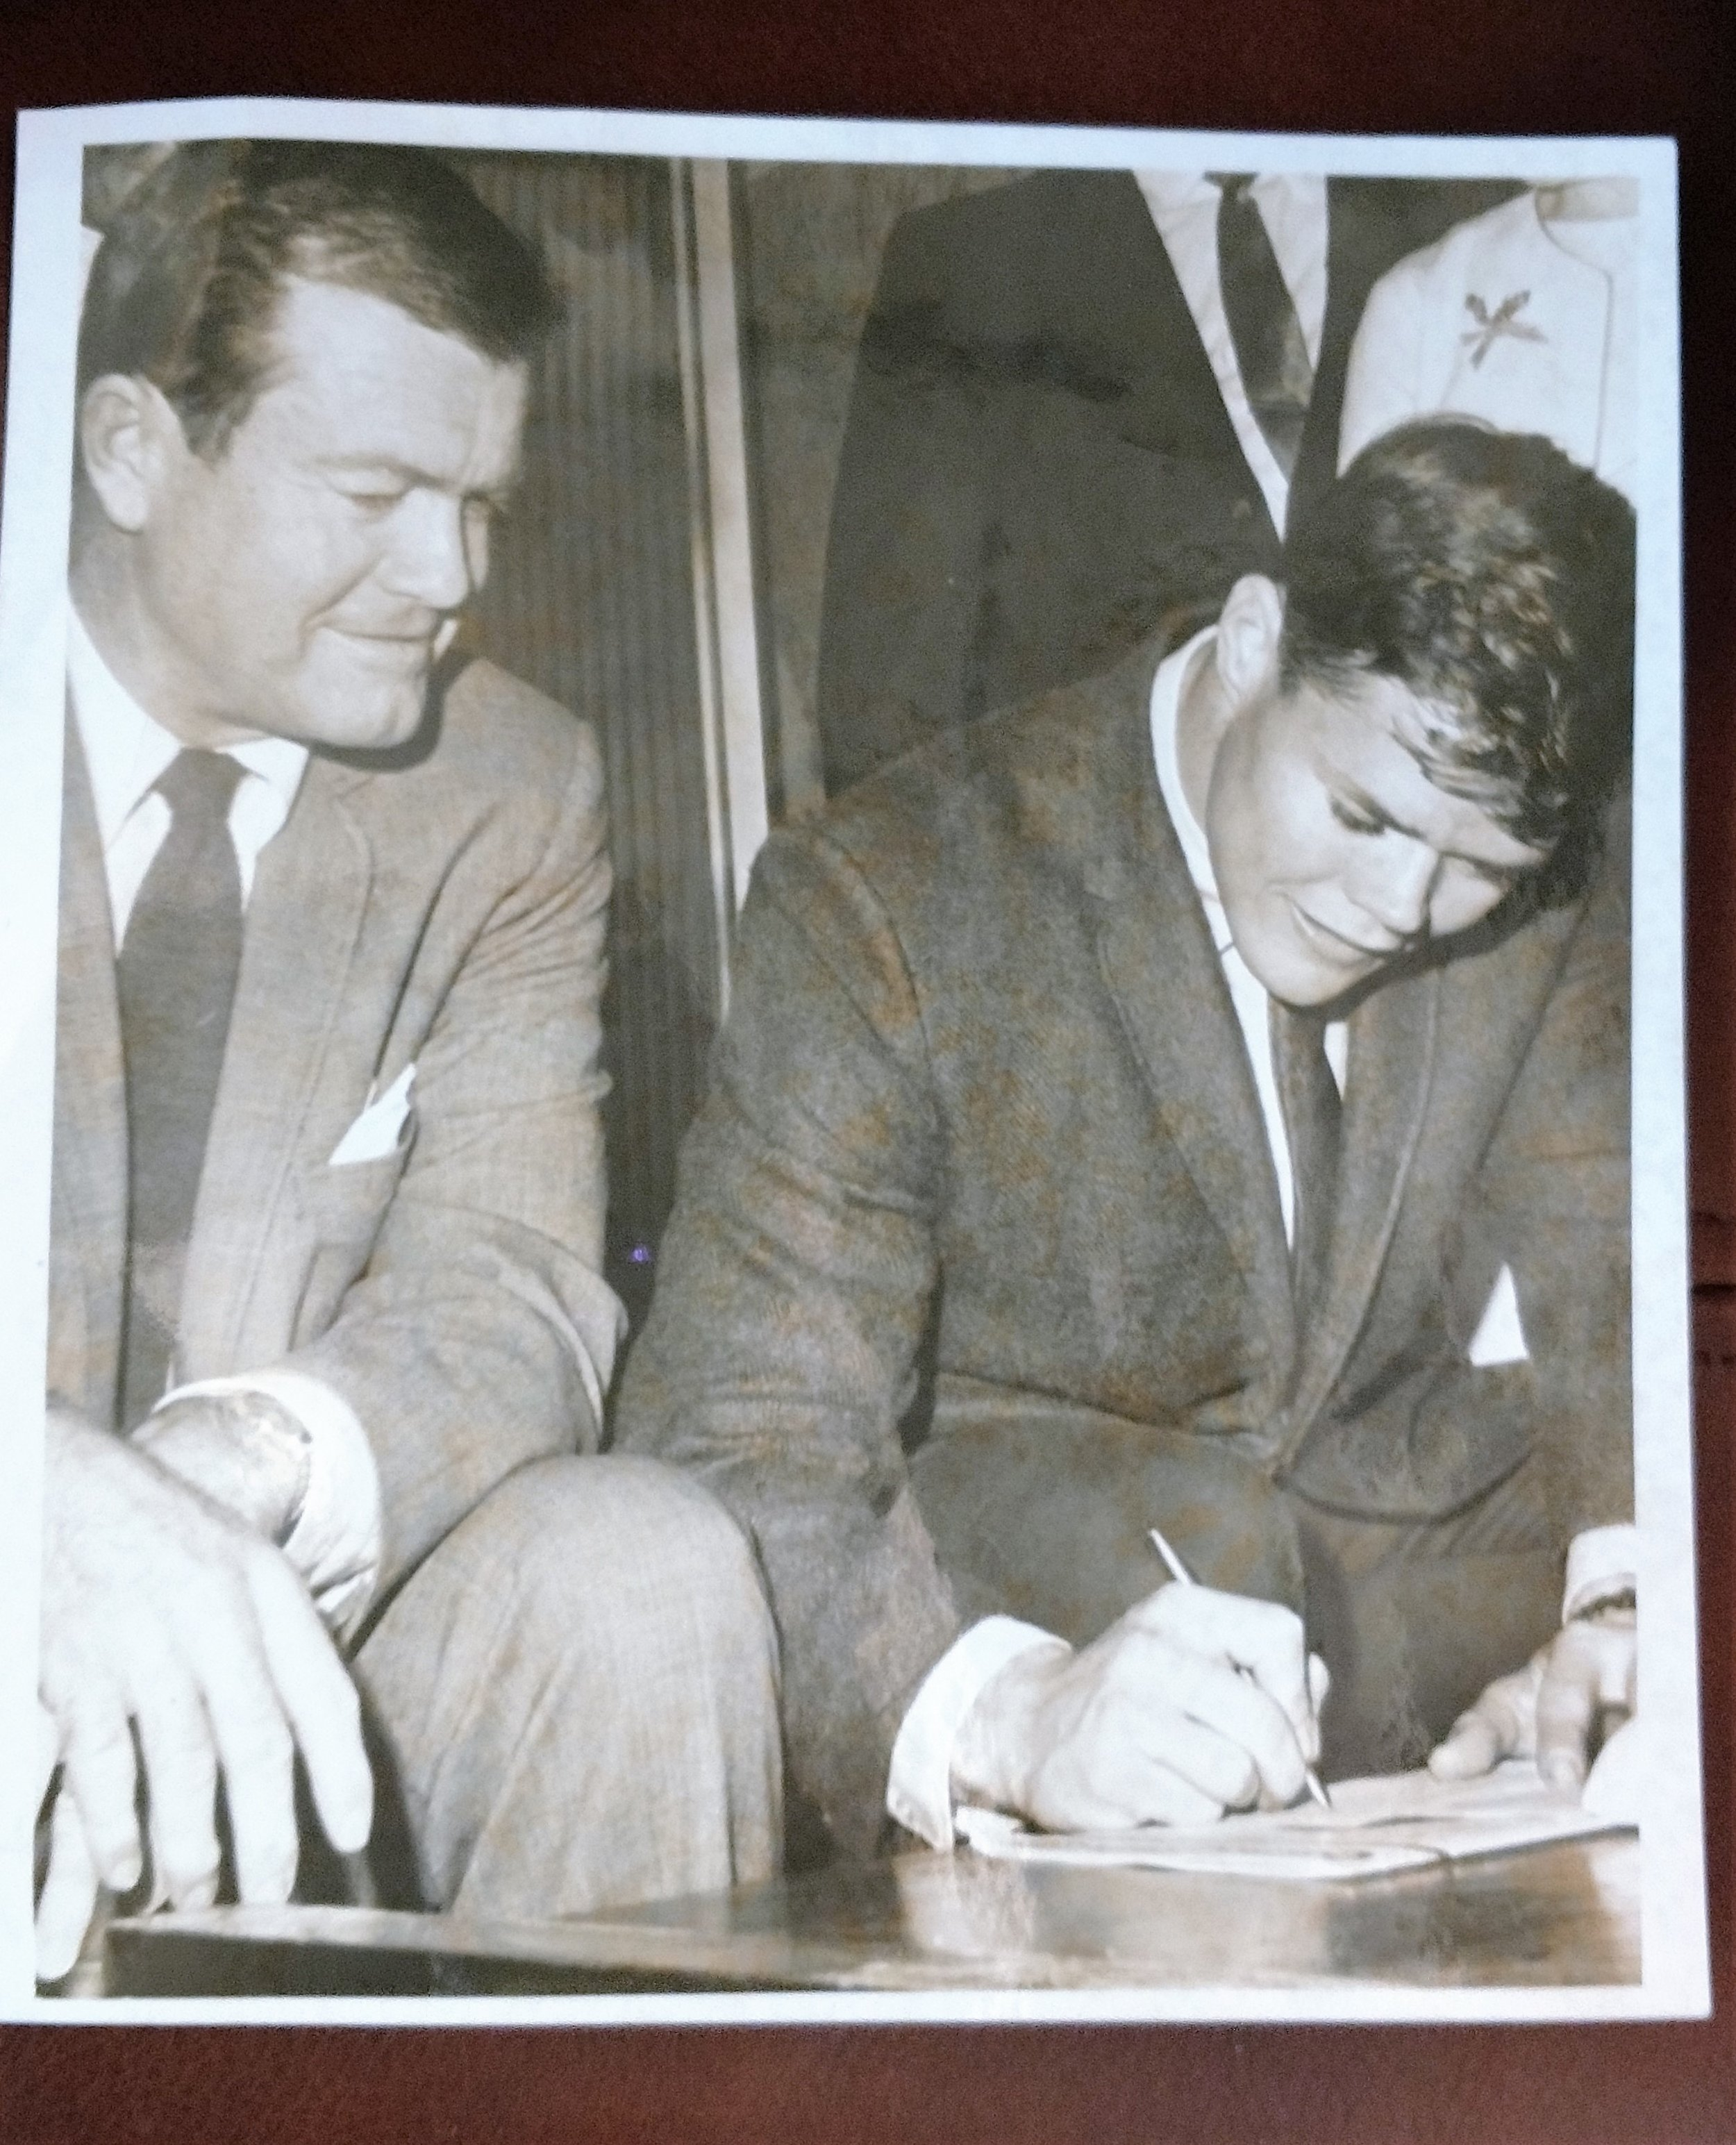 1967 signing date